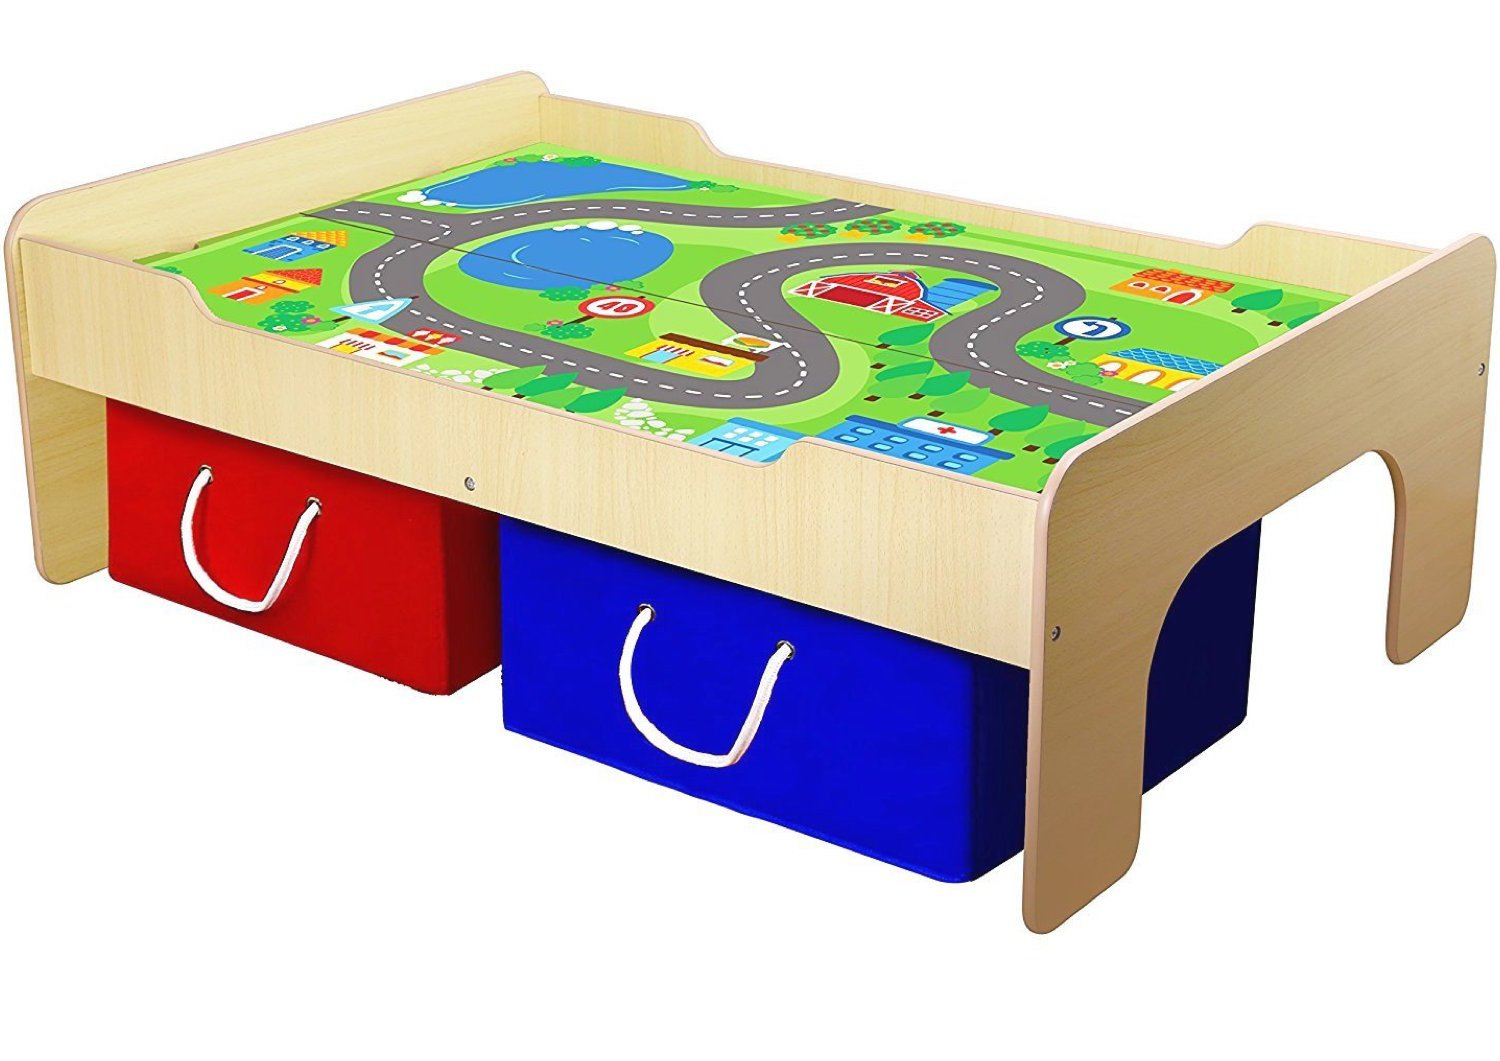 Pidoko Kids Wooden Multi Activity Play Table, Natural - For Boys & Girls - Includes Two Storage Bins - Double Sided Board - Perfect for Train Sets, Blocks, Arts & Crafts, and other Toddlers Toys